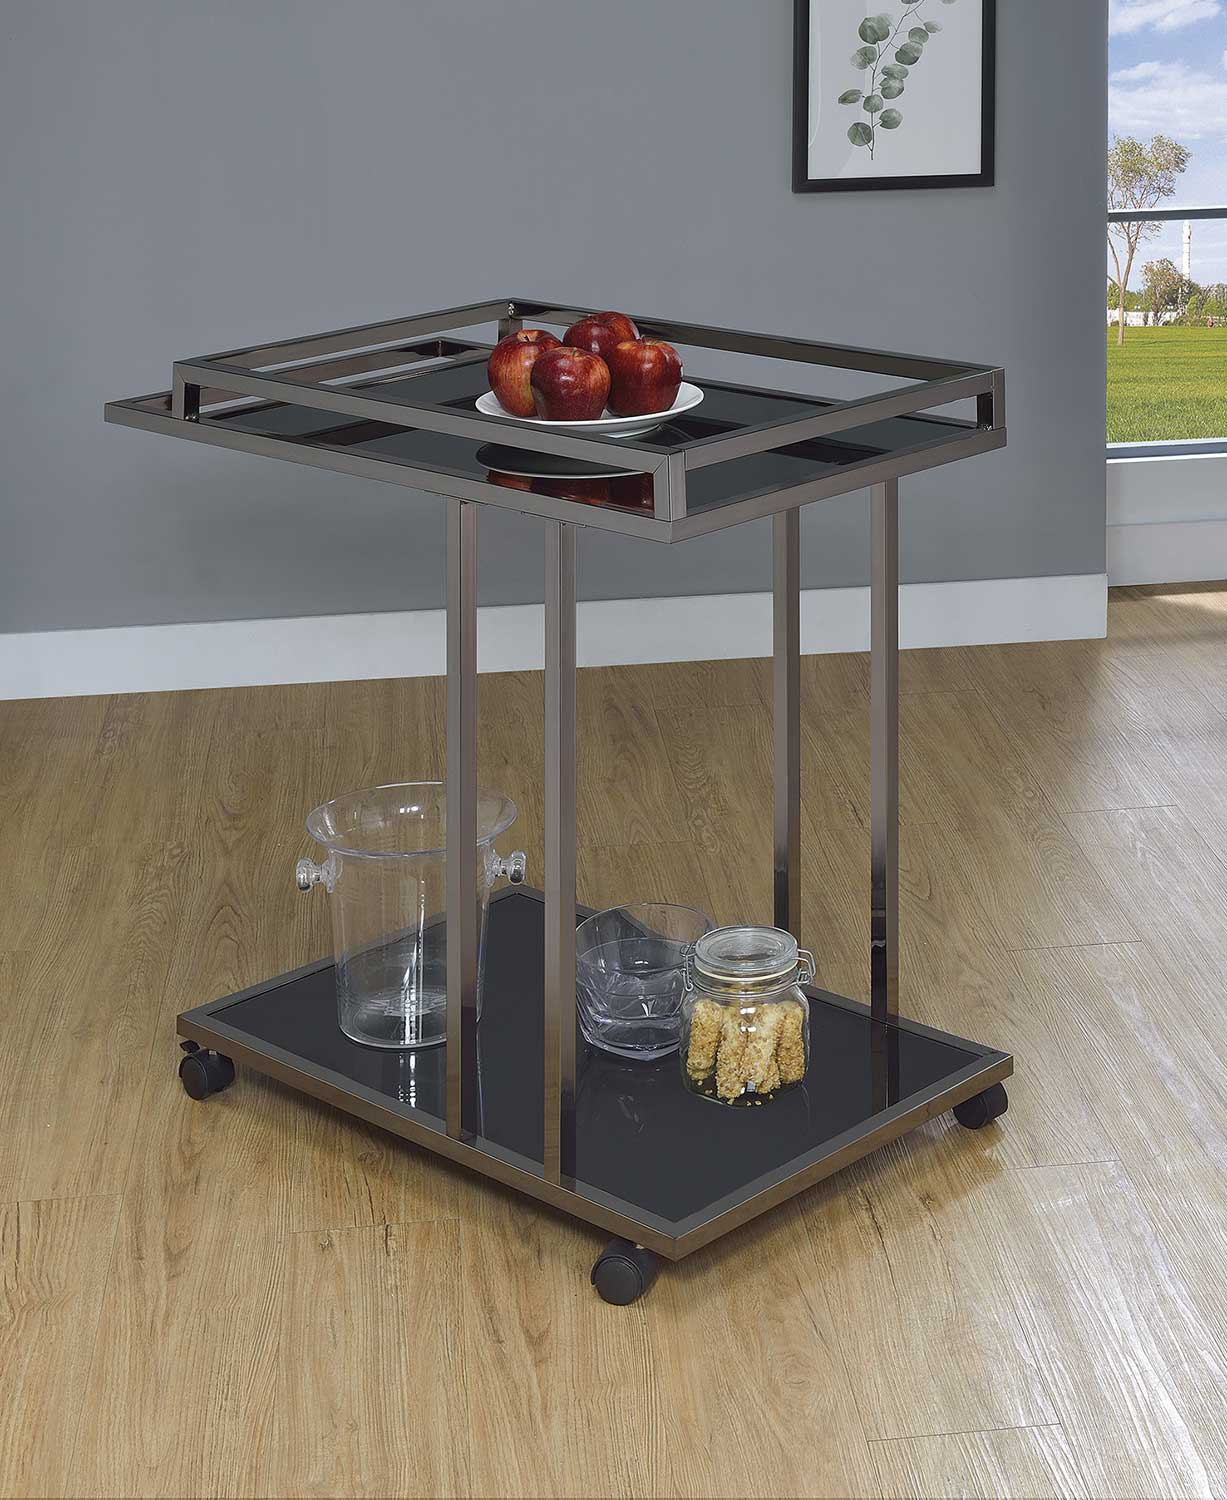 Coaster 910146 Serving Cart - Black Nickel